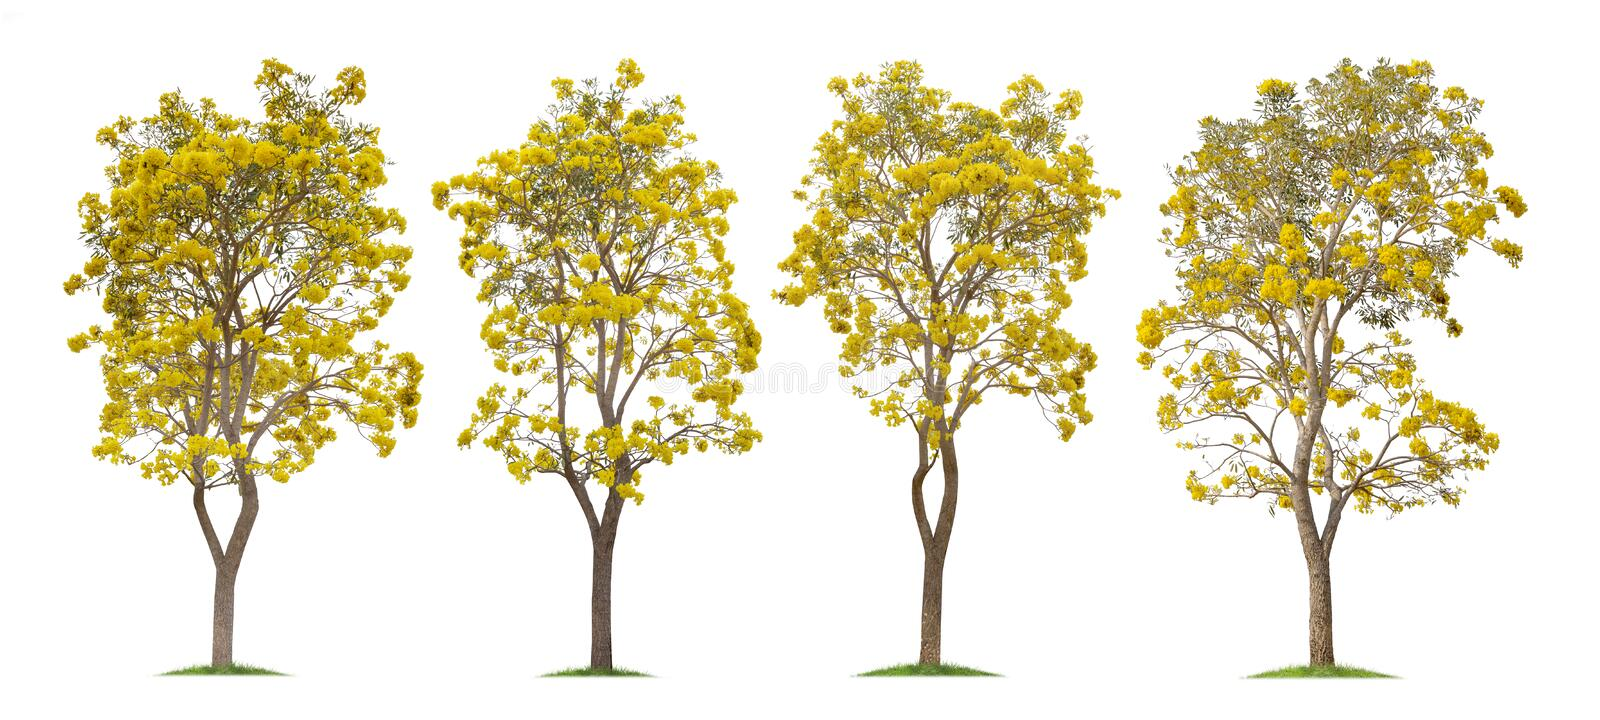 Collection of Isolated Silver trumpet trees or Yellow Tabebuia on white background royalty free stock image